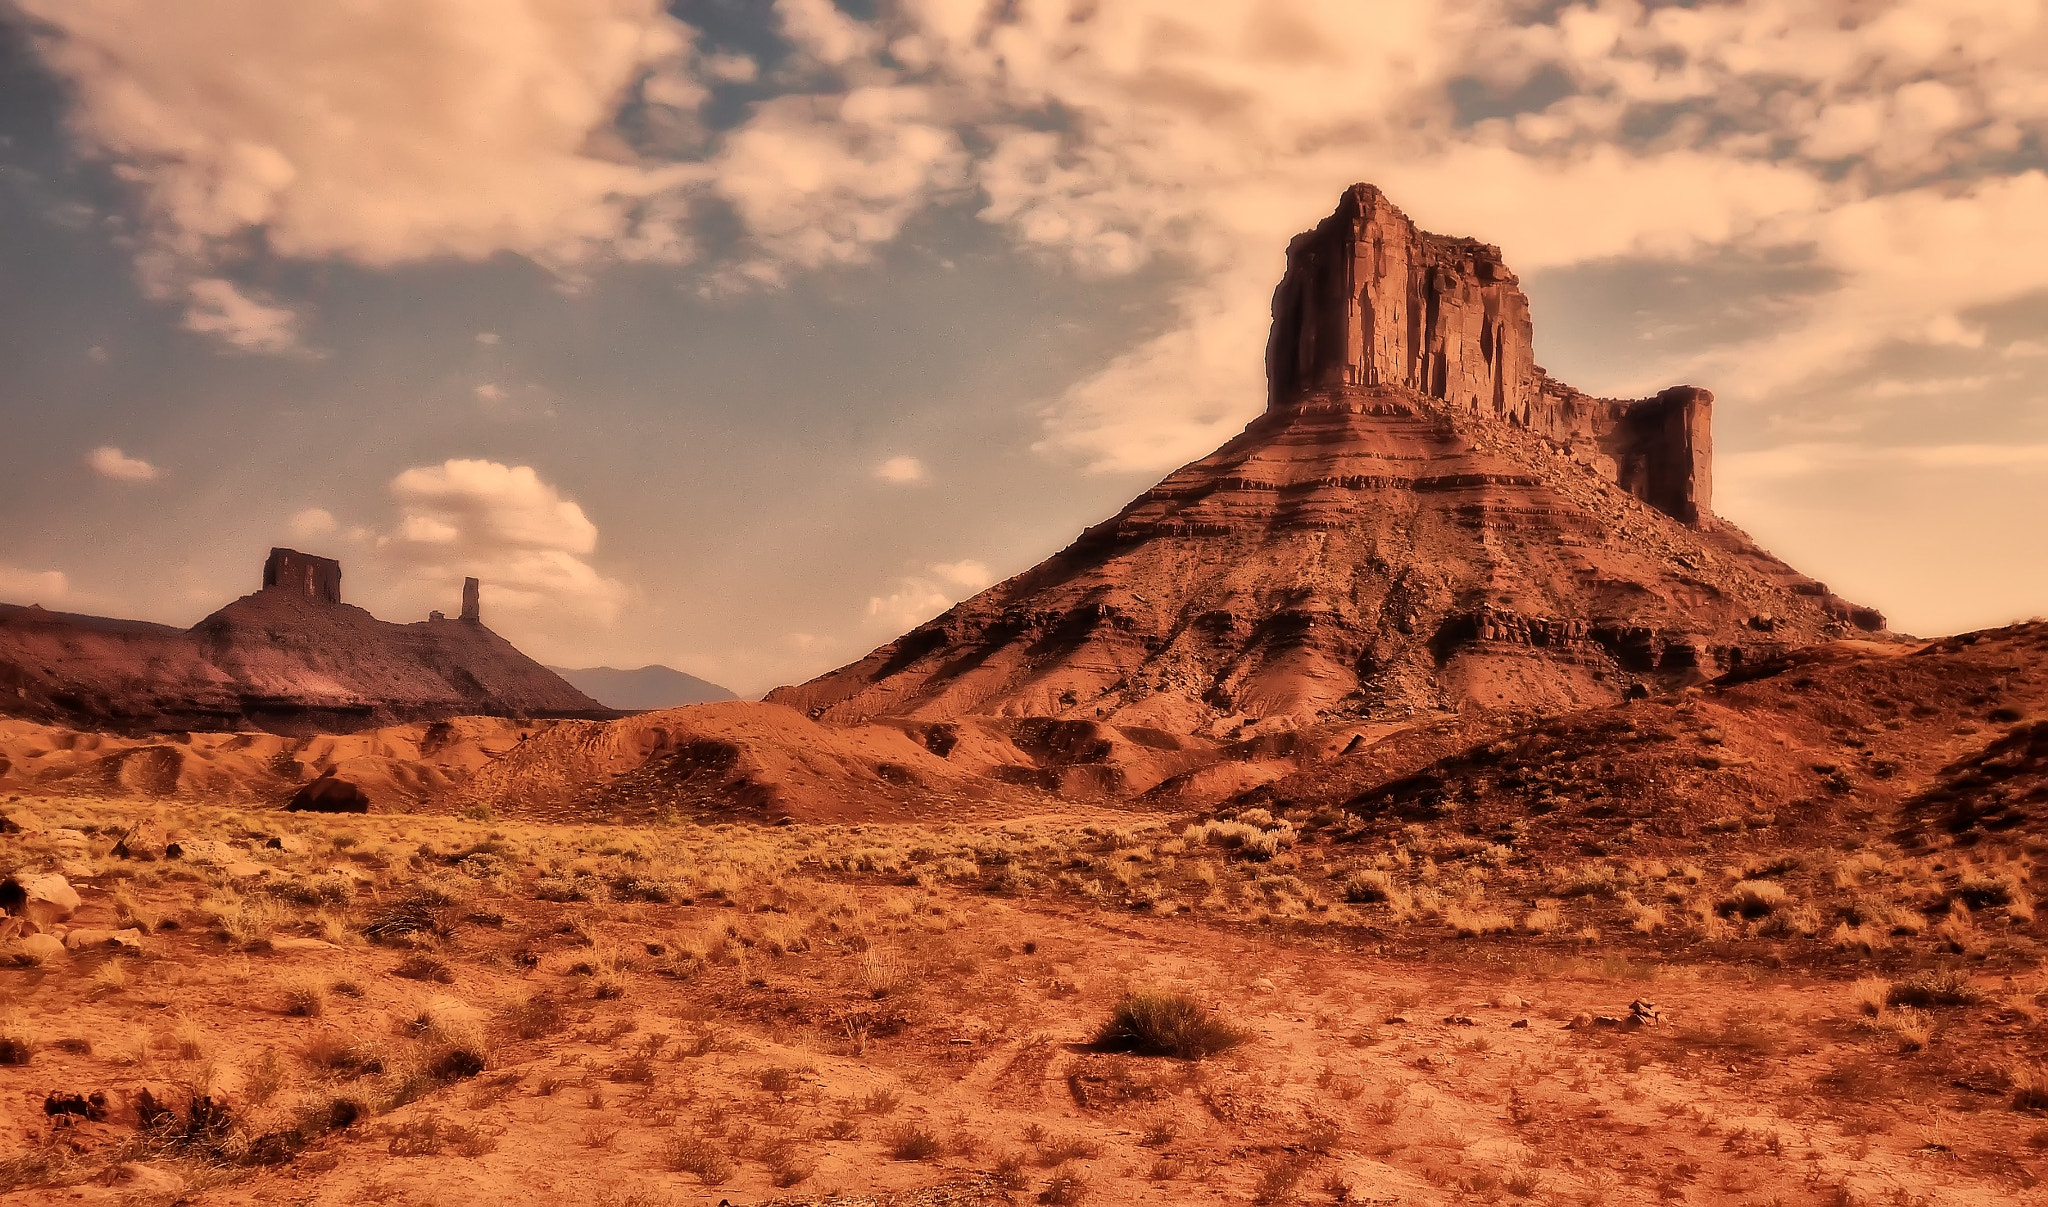 Photograph Professor Valley - Utah by Jeff Clow on 500px